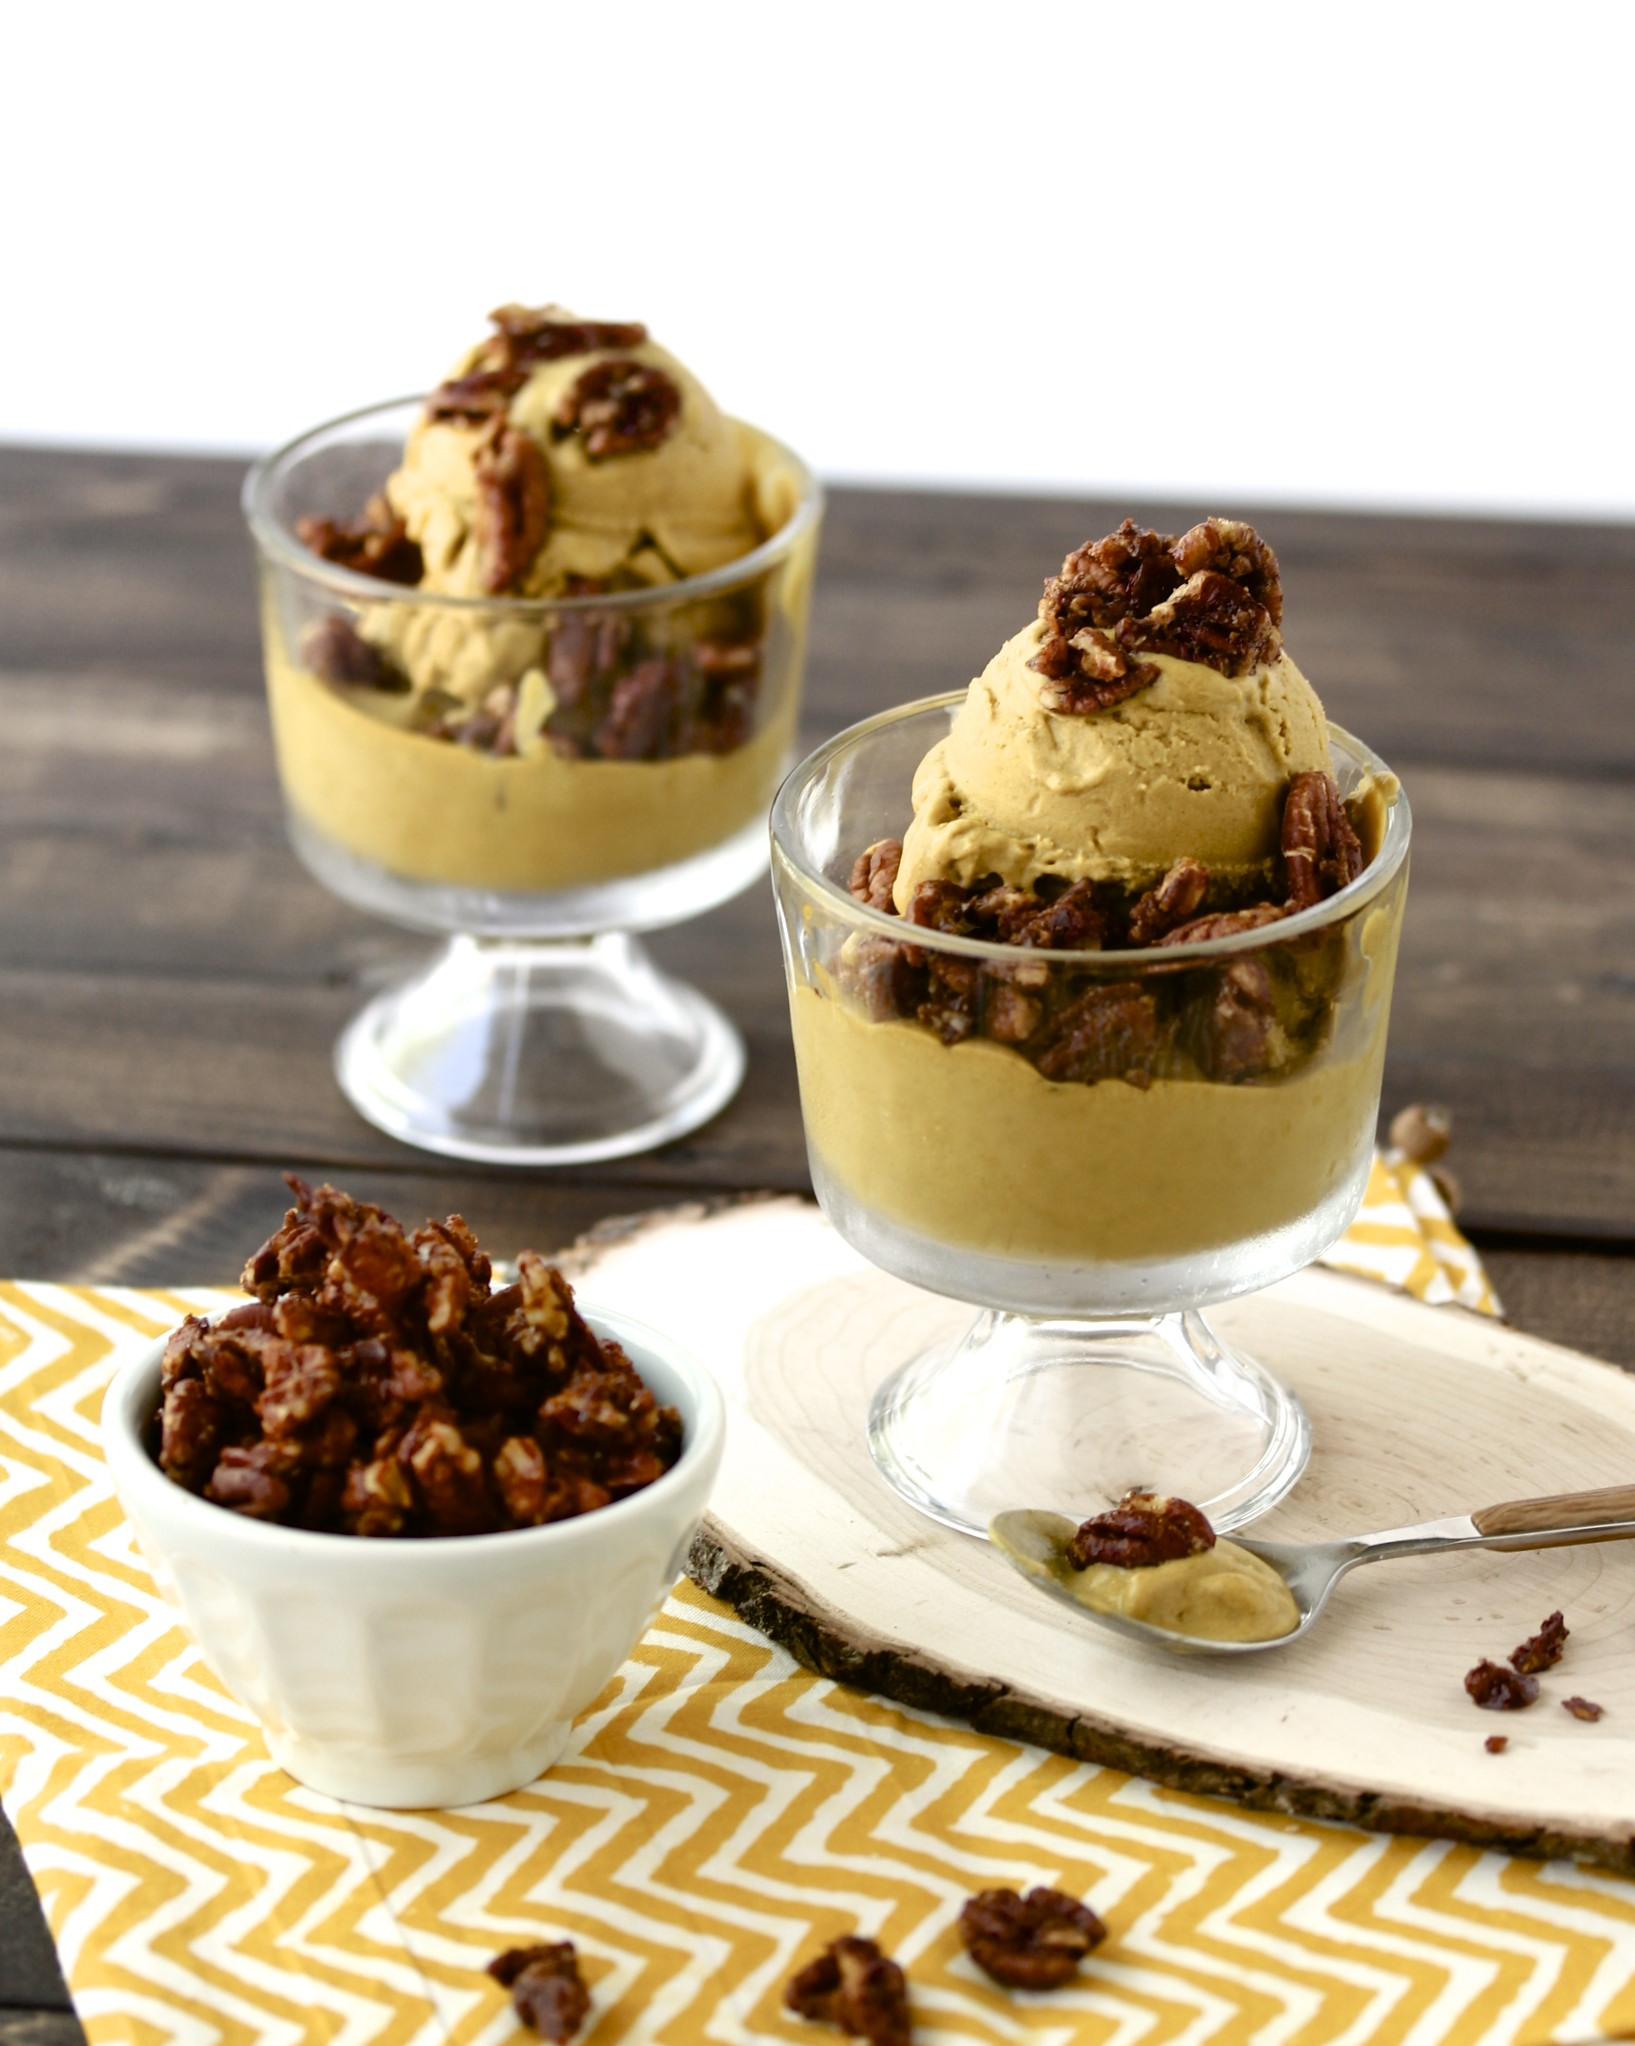 Browned Butter Ice Cream with Candied Pecans